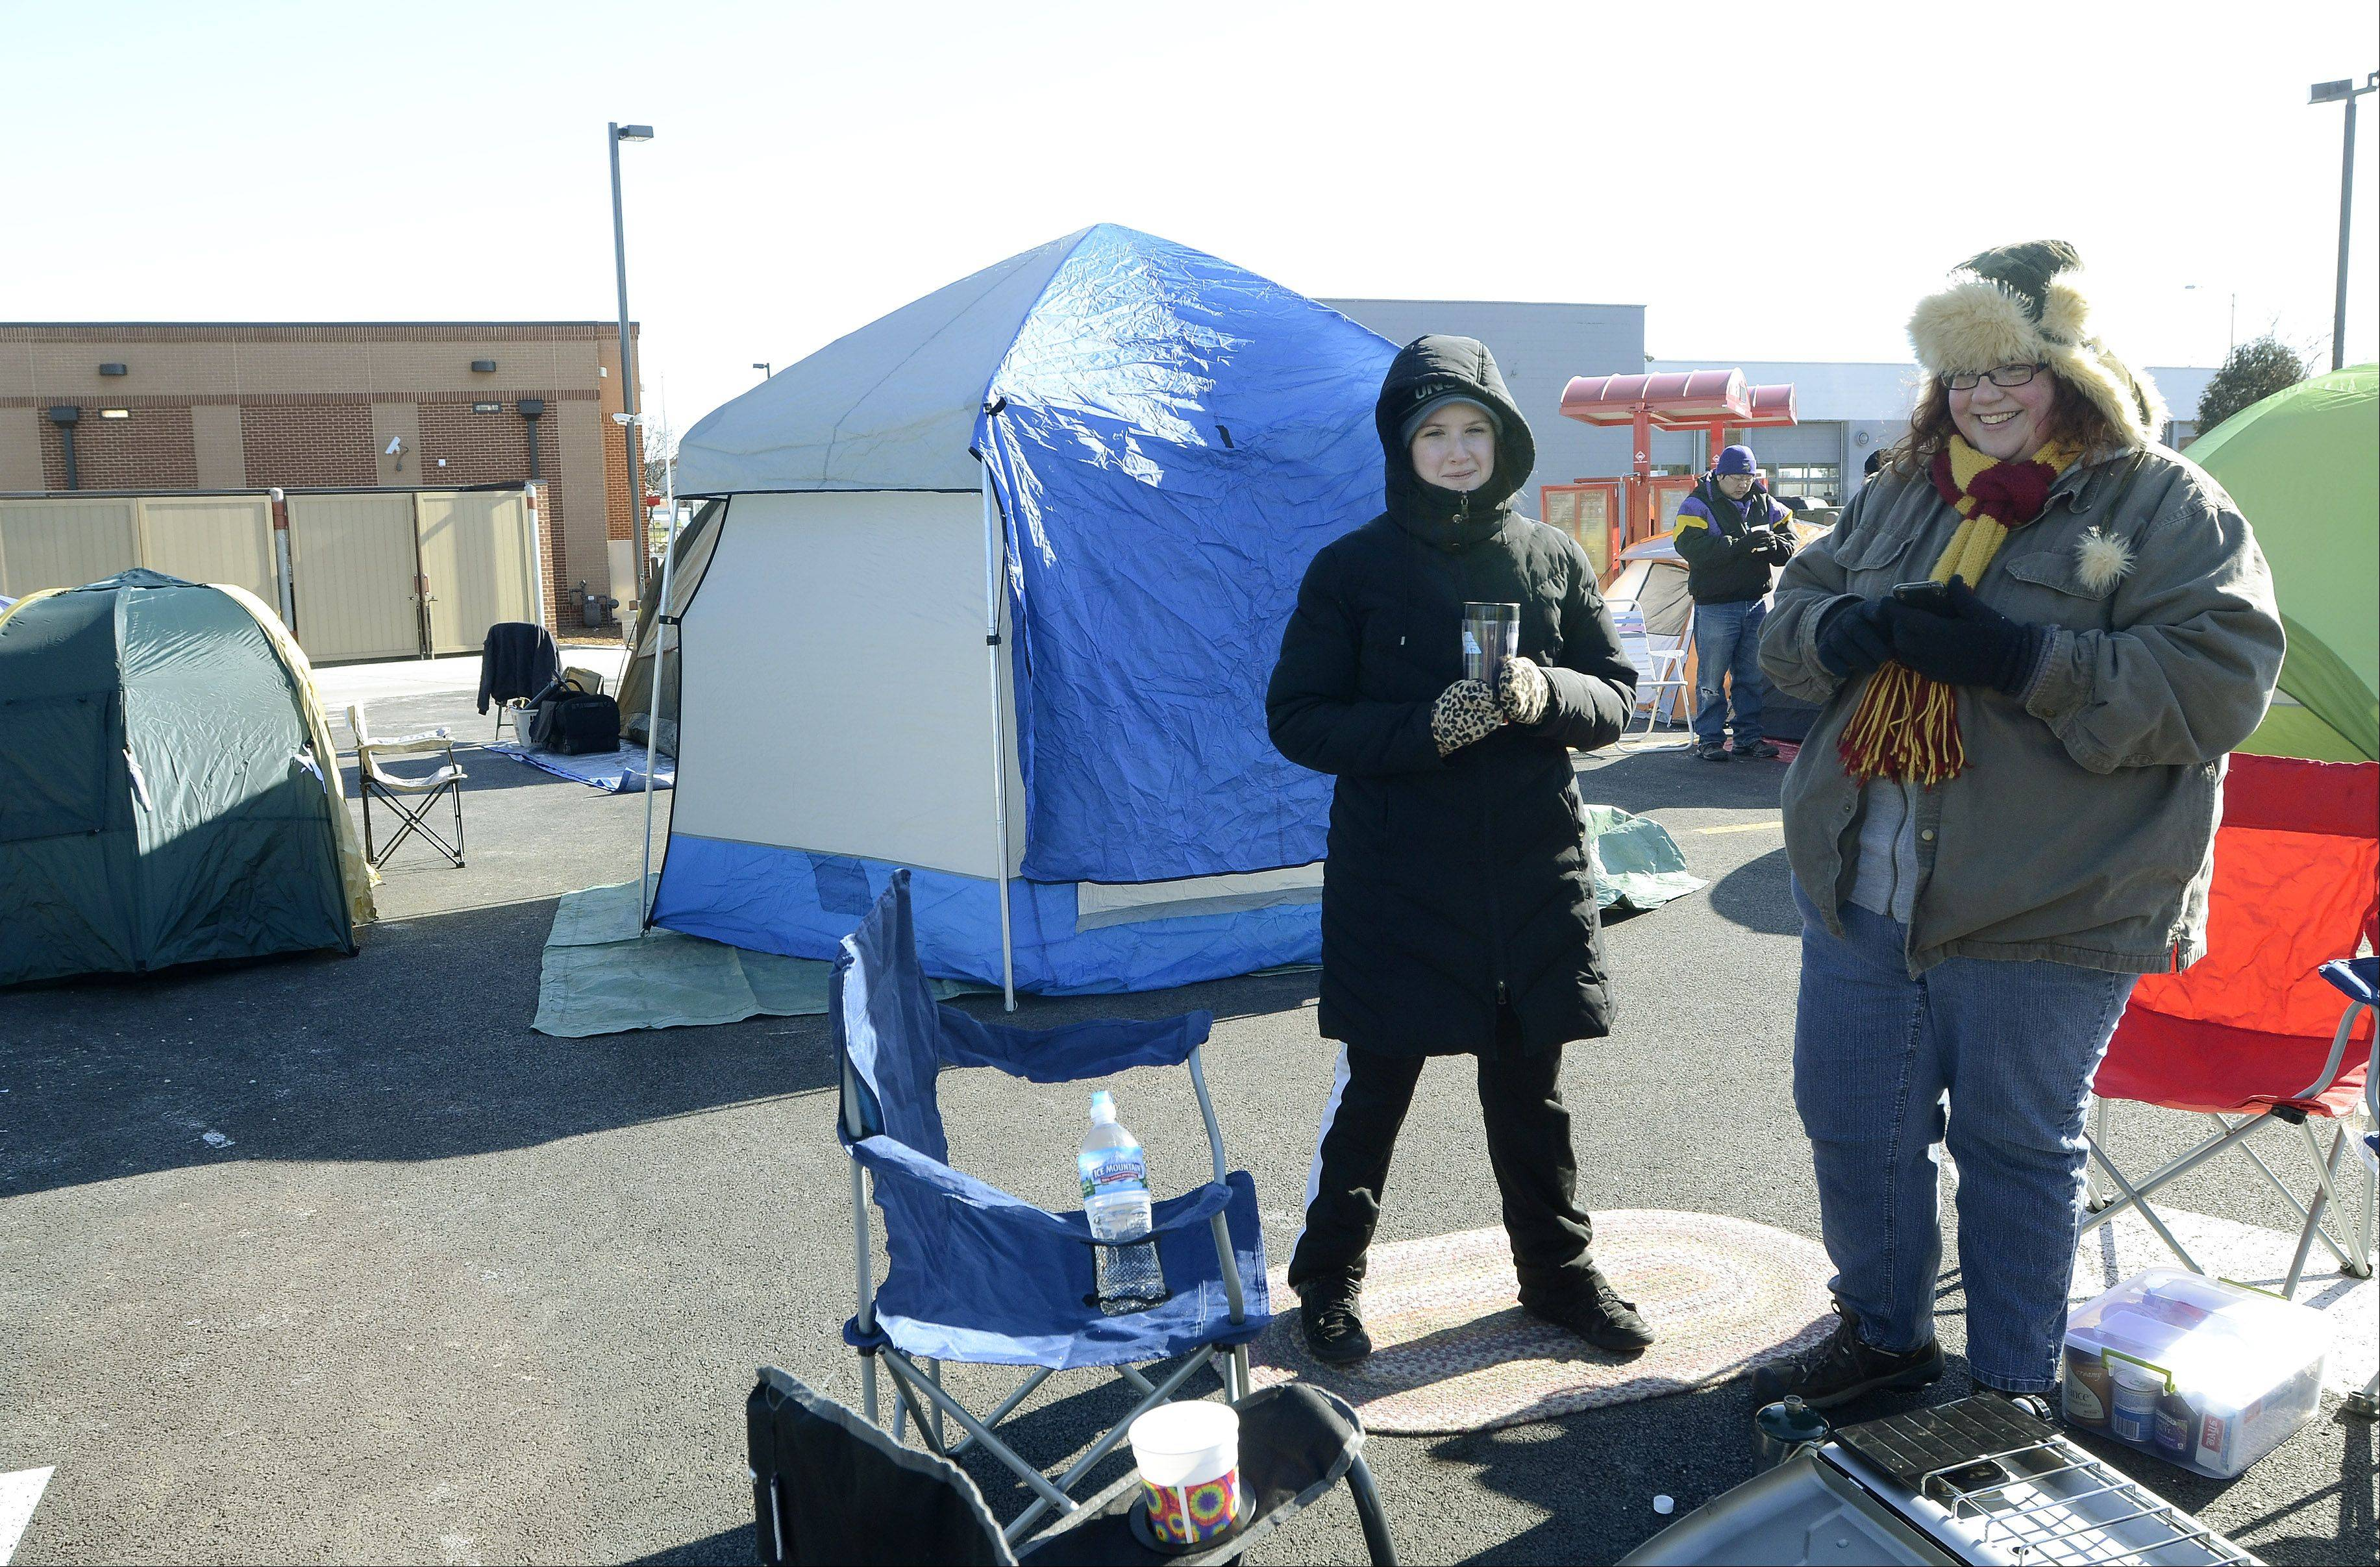 Linda Foertsch, left, of Addison and Jennifer Floyd of Oak Lawn, camp out Wednesday in a tent city at the new Mount Prospect Chick-fil-A.